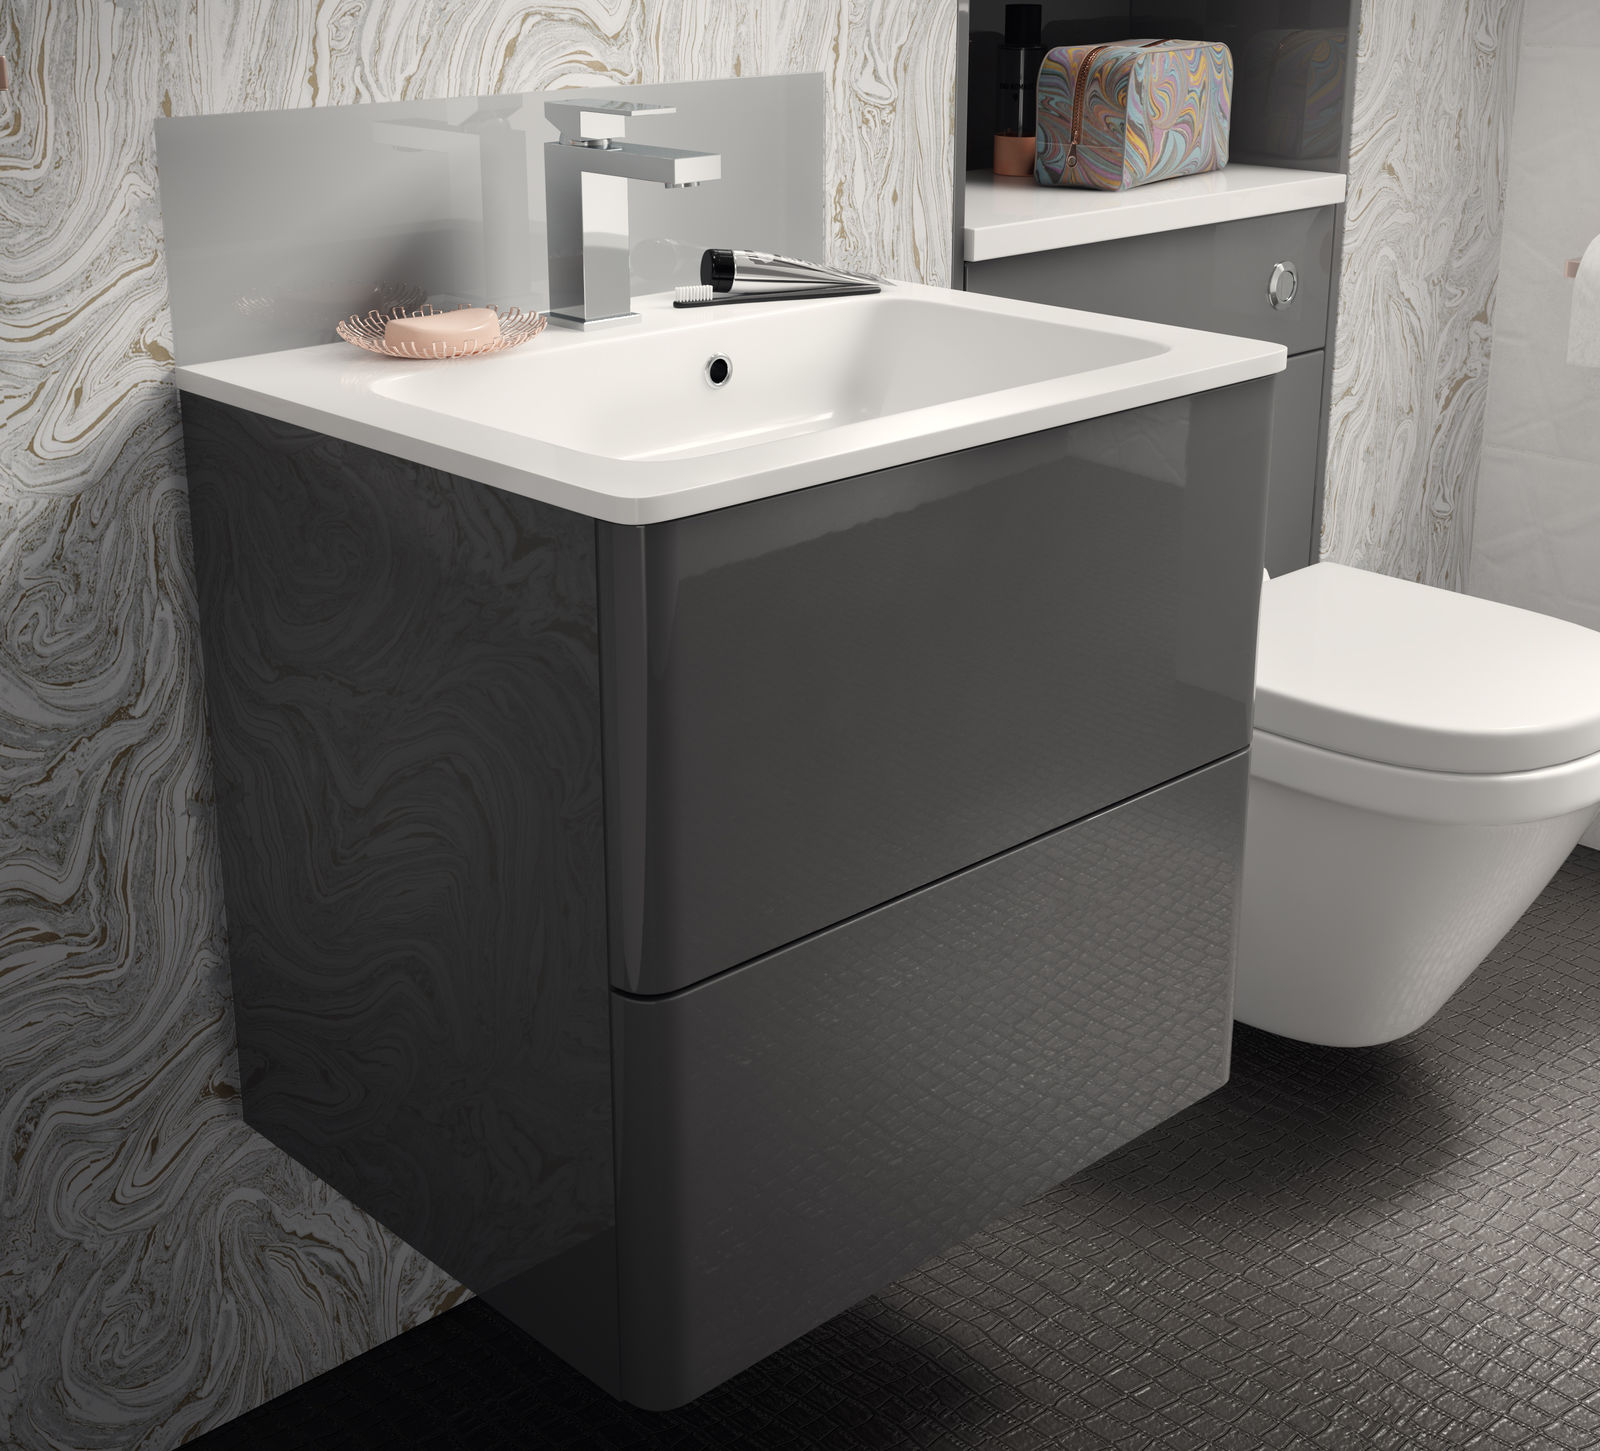 UK Kitchens and Bathrooms - Symphony Fiora